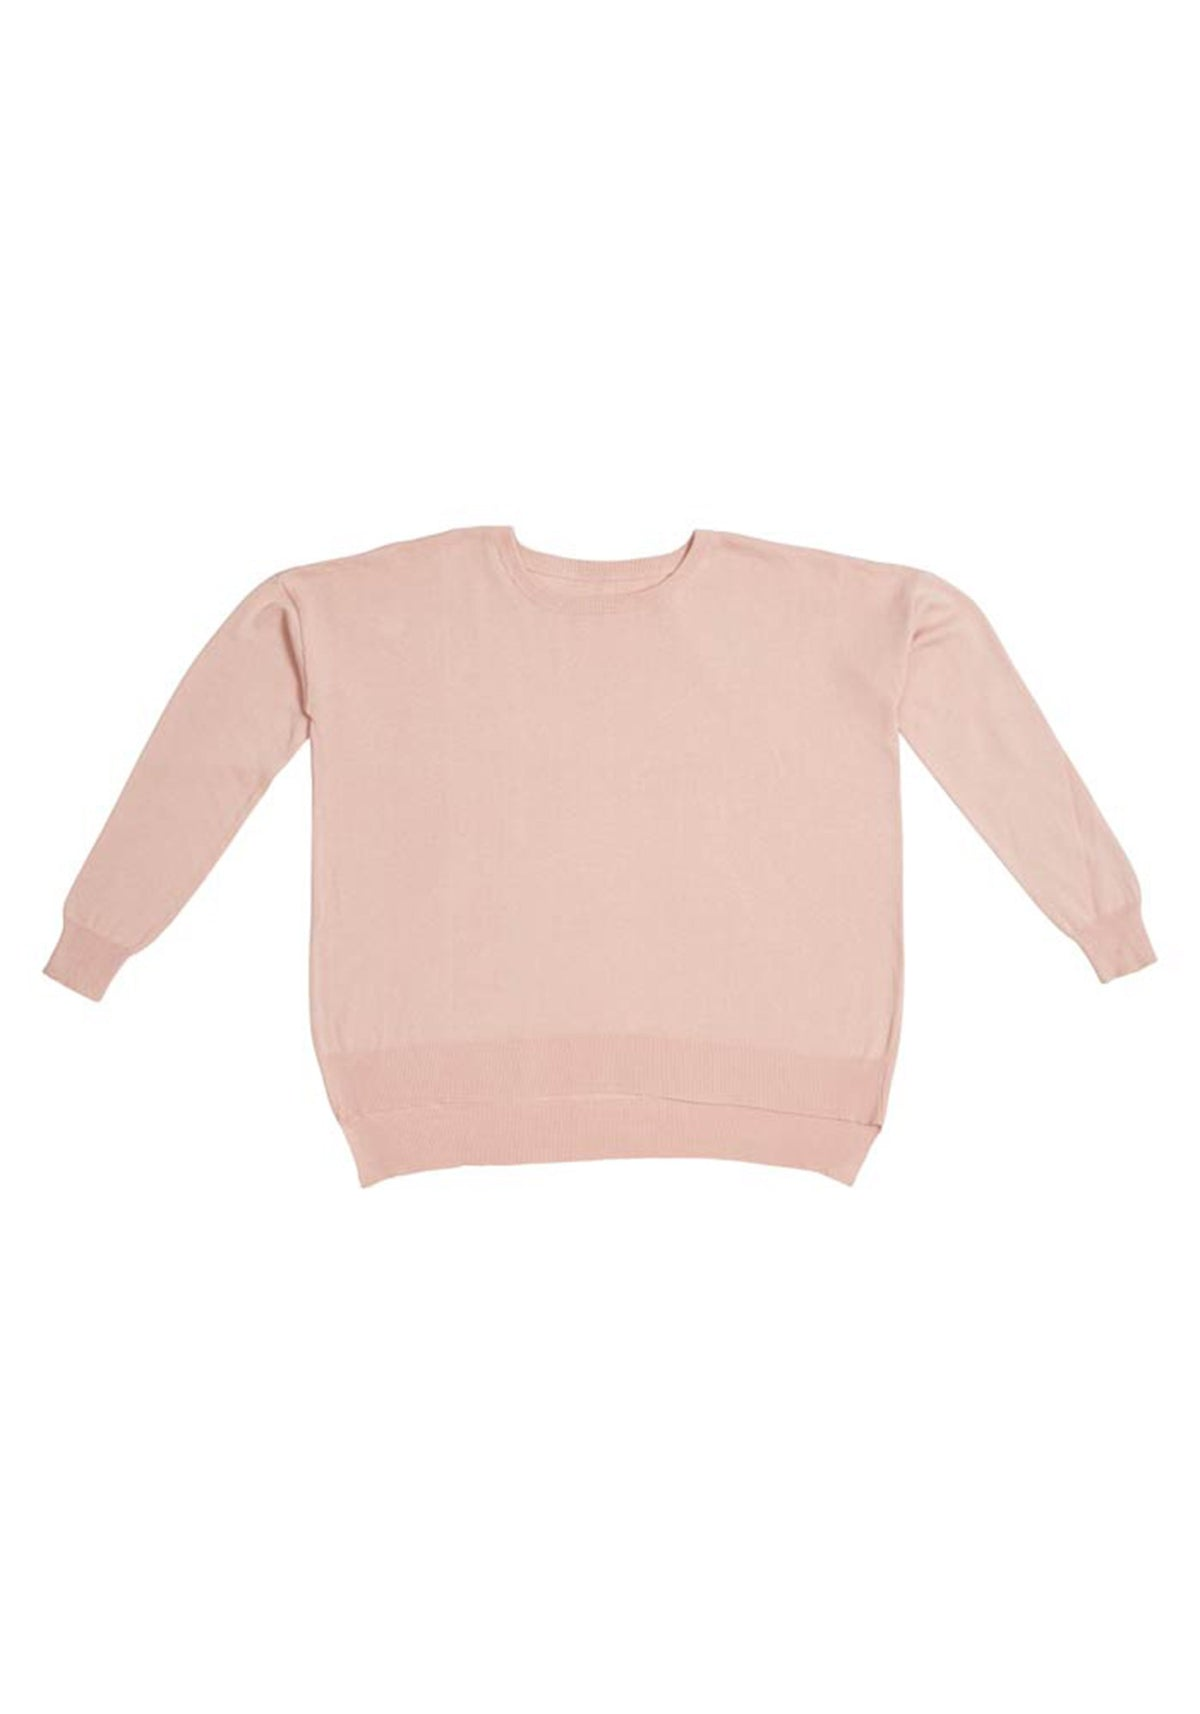 Emily Womens Knitted Jumper - Dusty Pink